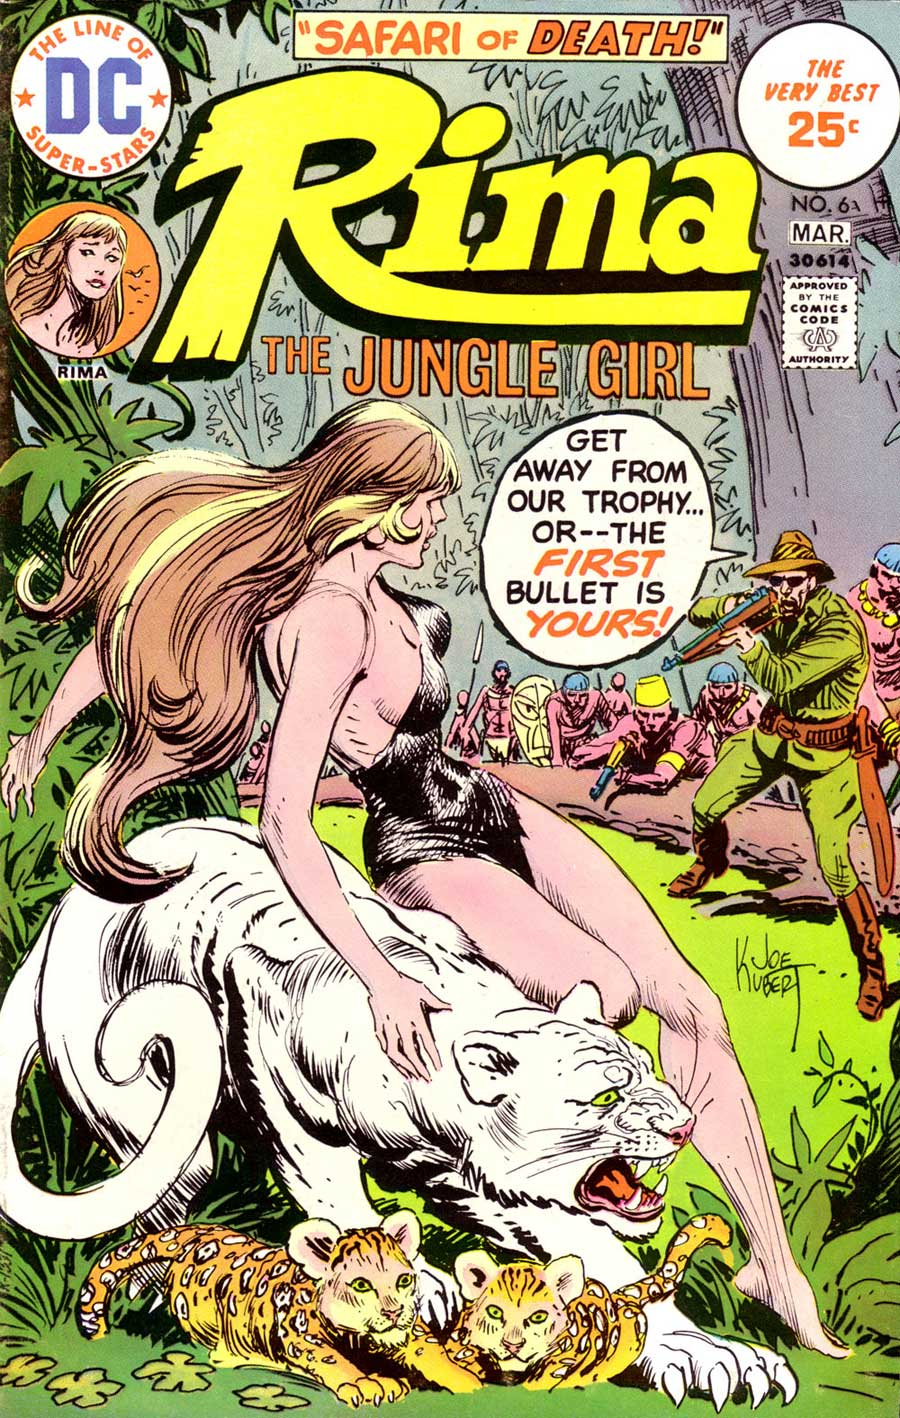 Rima the Jungle Girl v1 #6 dc bronze age comic book cover art by Joe Kubert